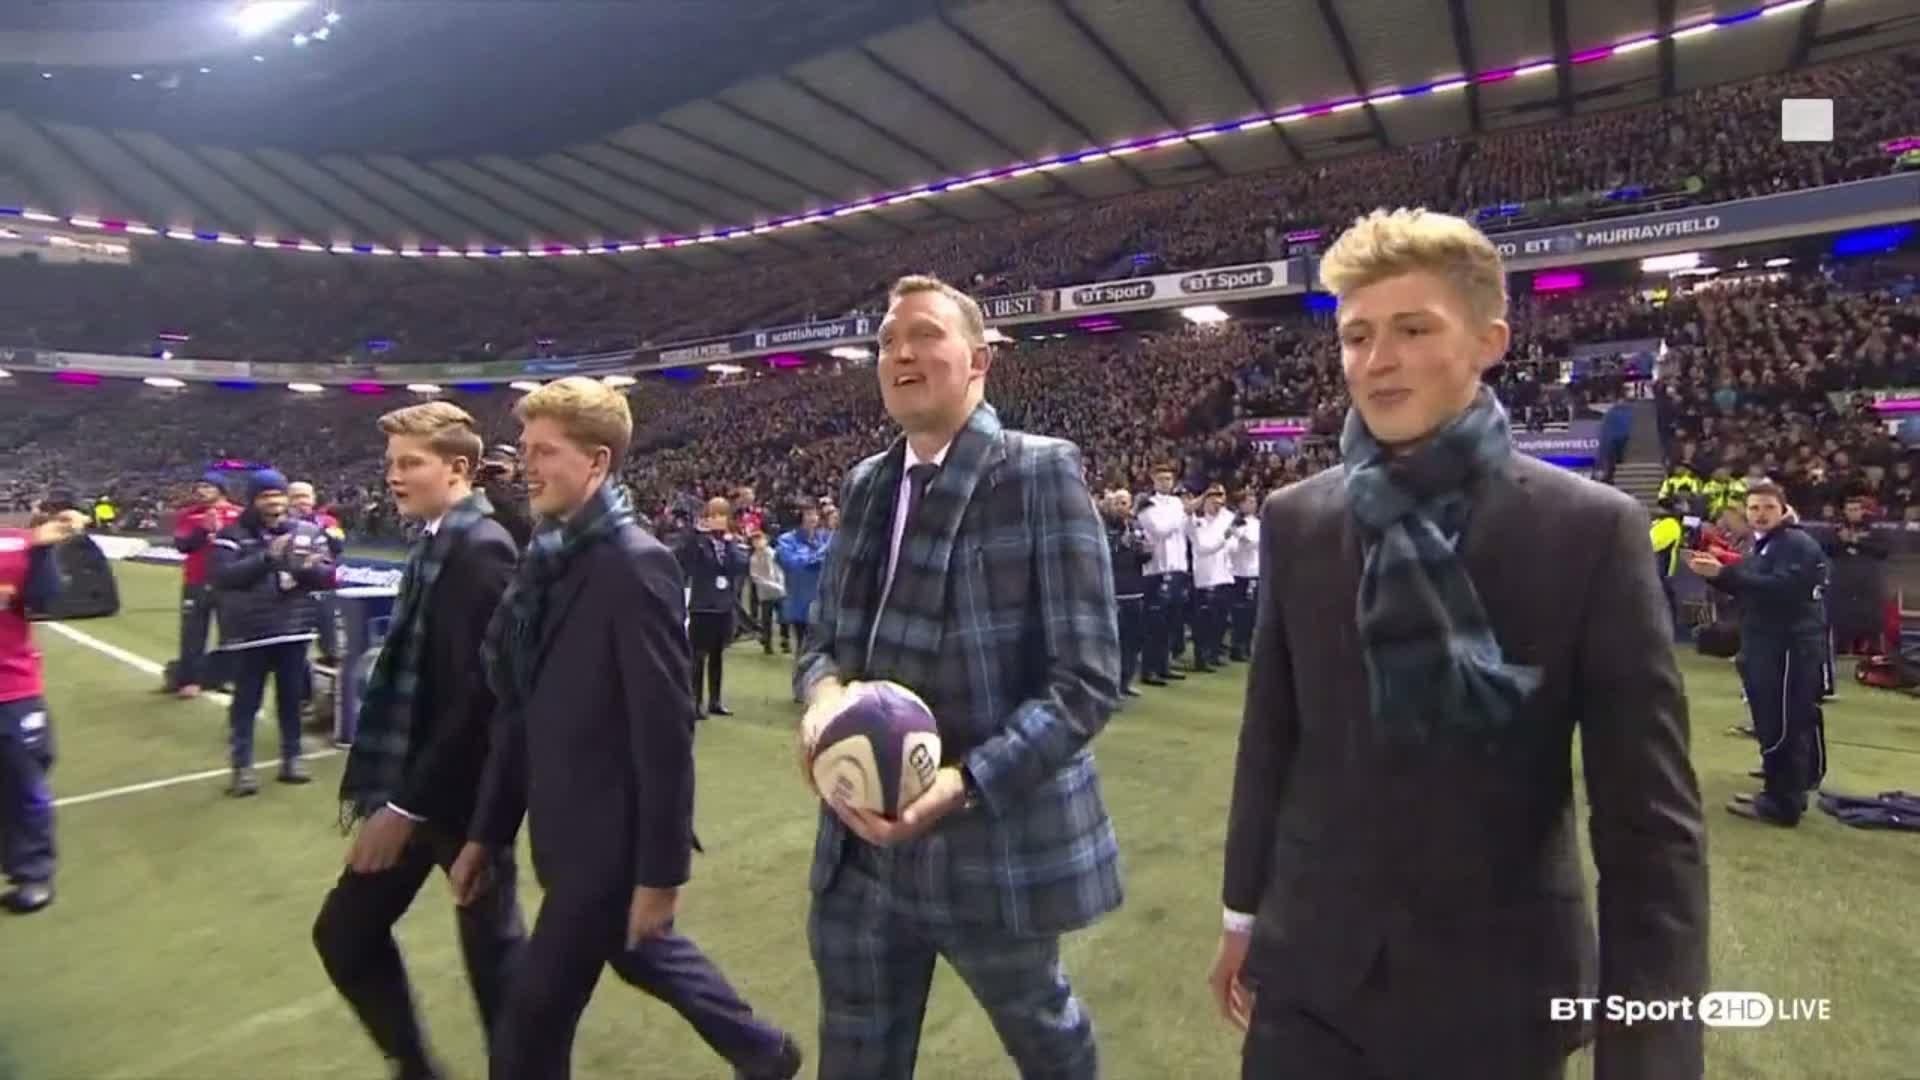 RT @btsportrugby: What a moment 👏  @DoddieWeir5 delivers the match ball with his sons as he continues to battle MND. https://t.co/htfwwWiTBw